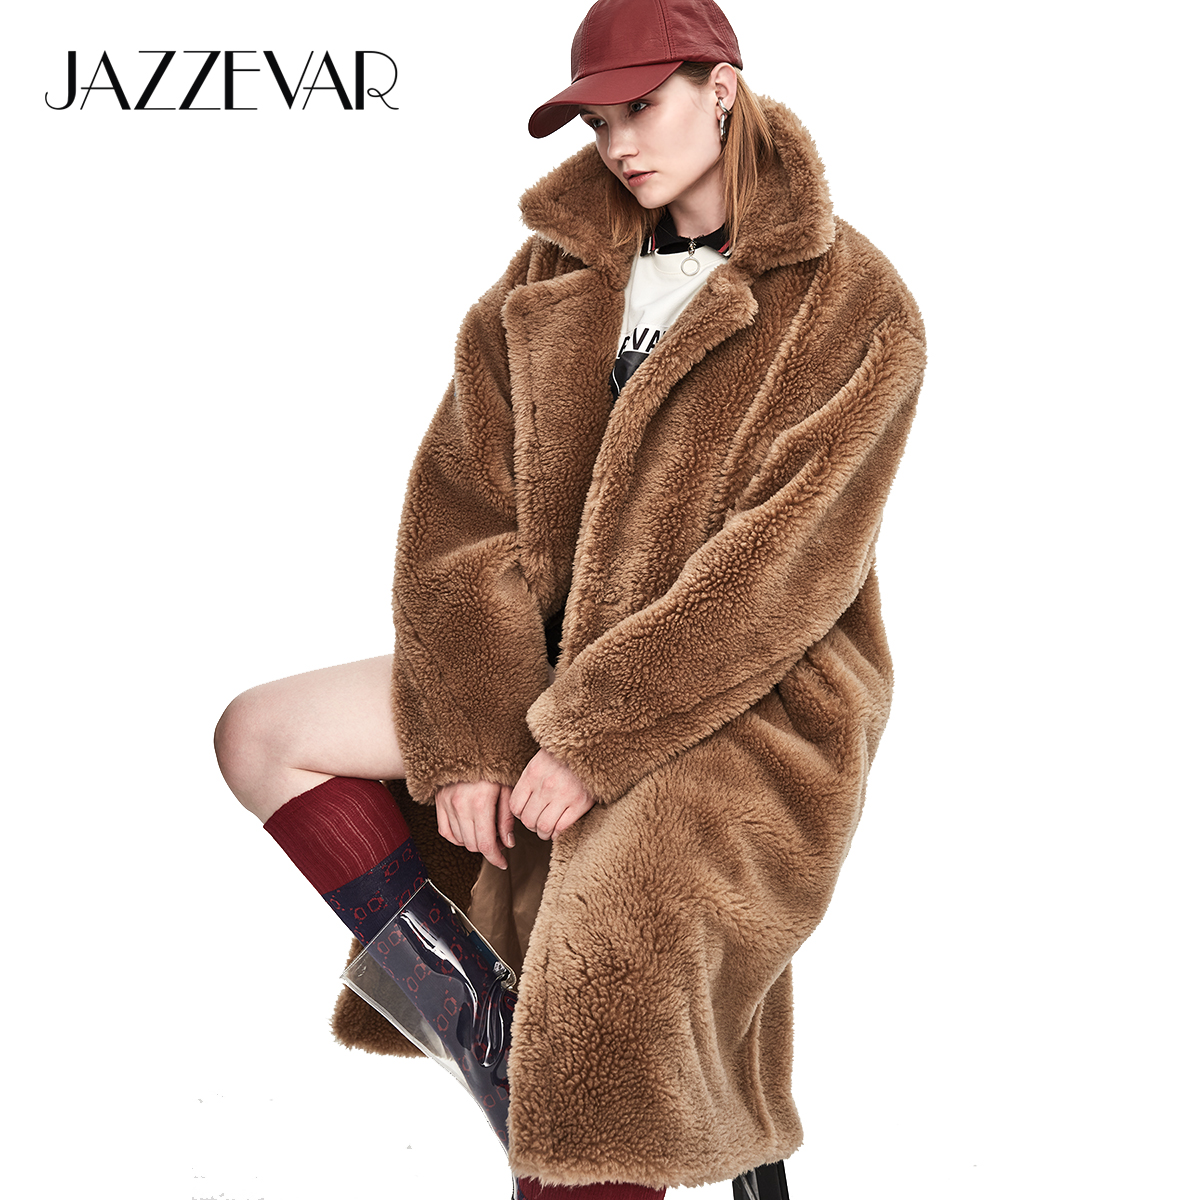 JAZZEVAR 2019 Winter New Fashion Womens Teddy Bear Icon Coat X-Long Real Sheep Fur Oversized Parka Thick Warm Outerwear J8003(China)